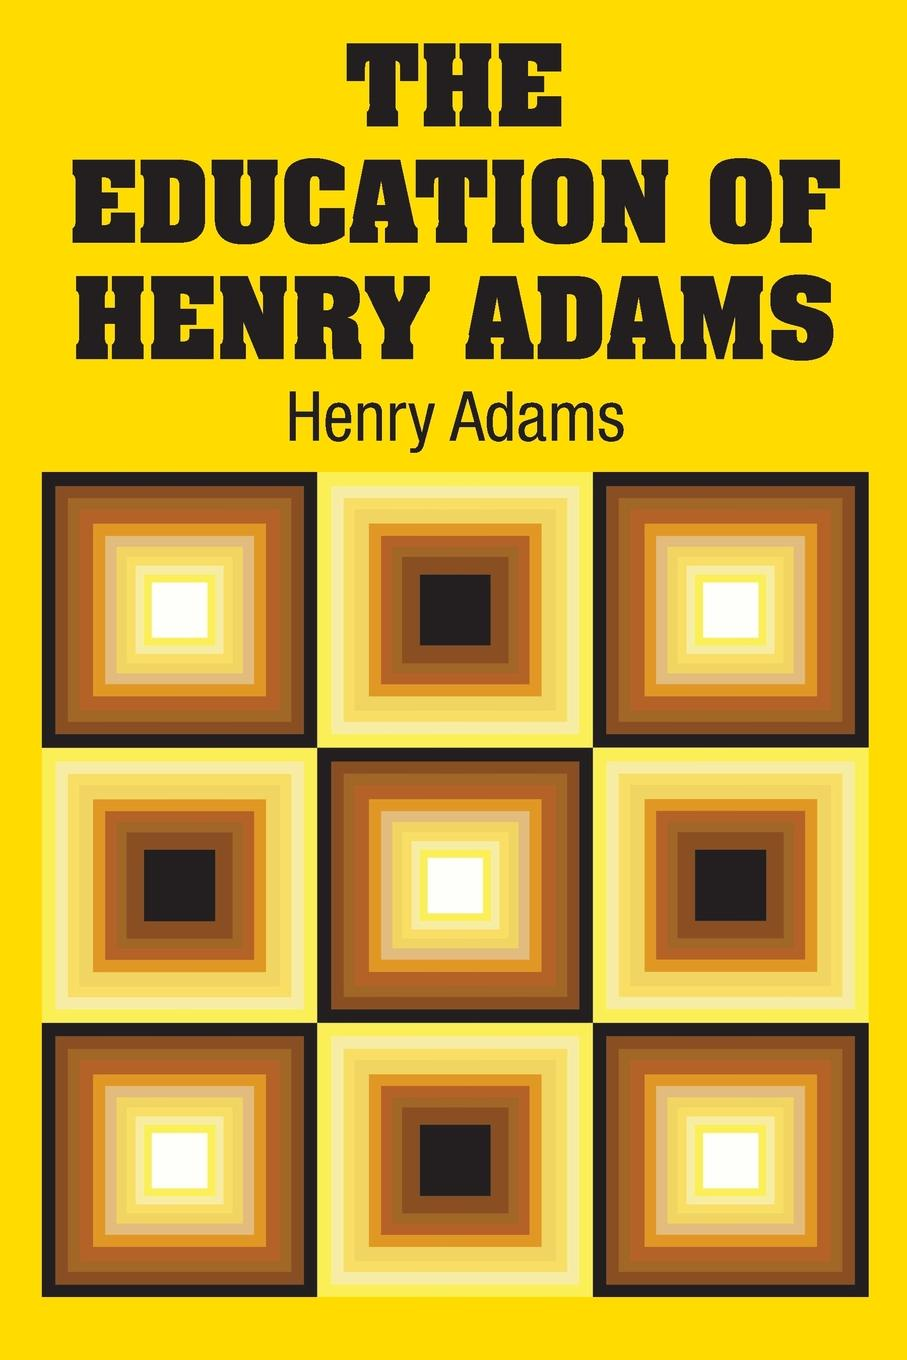 цена на Henry Adams The Education of Henry Adams